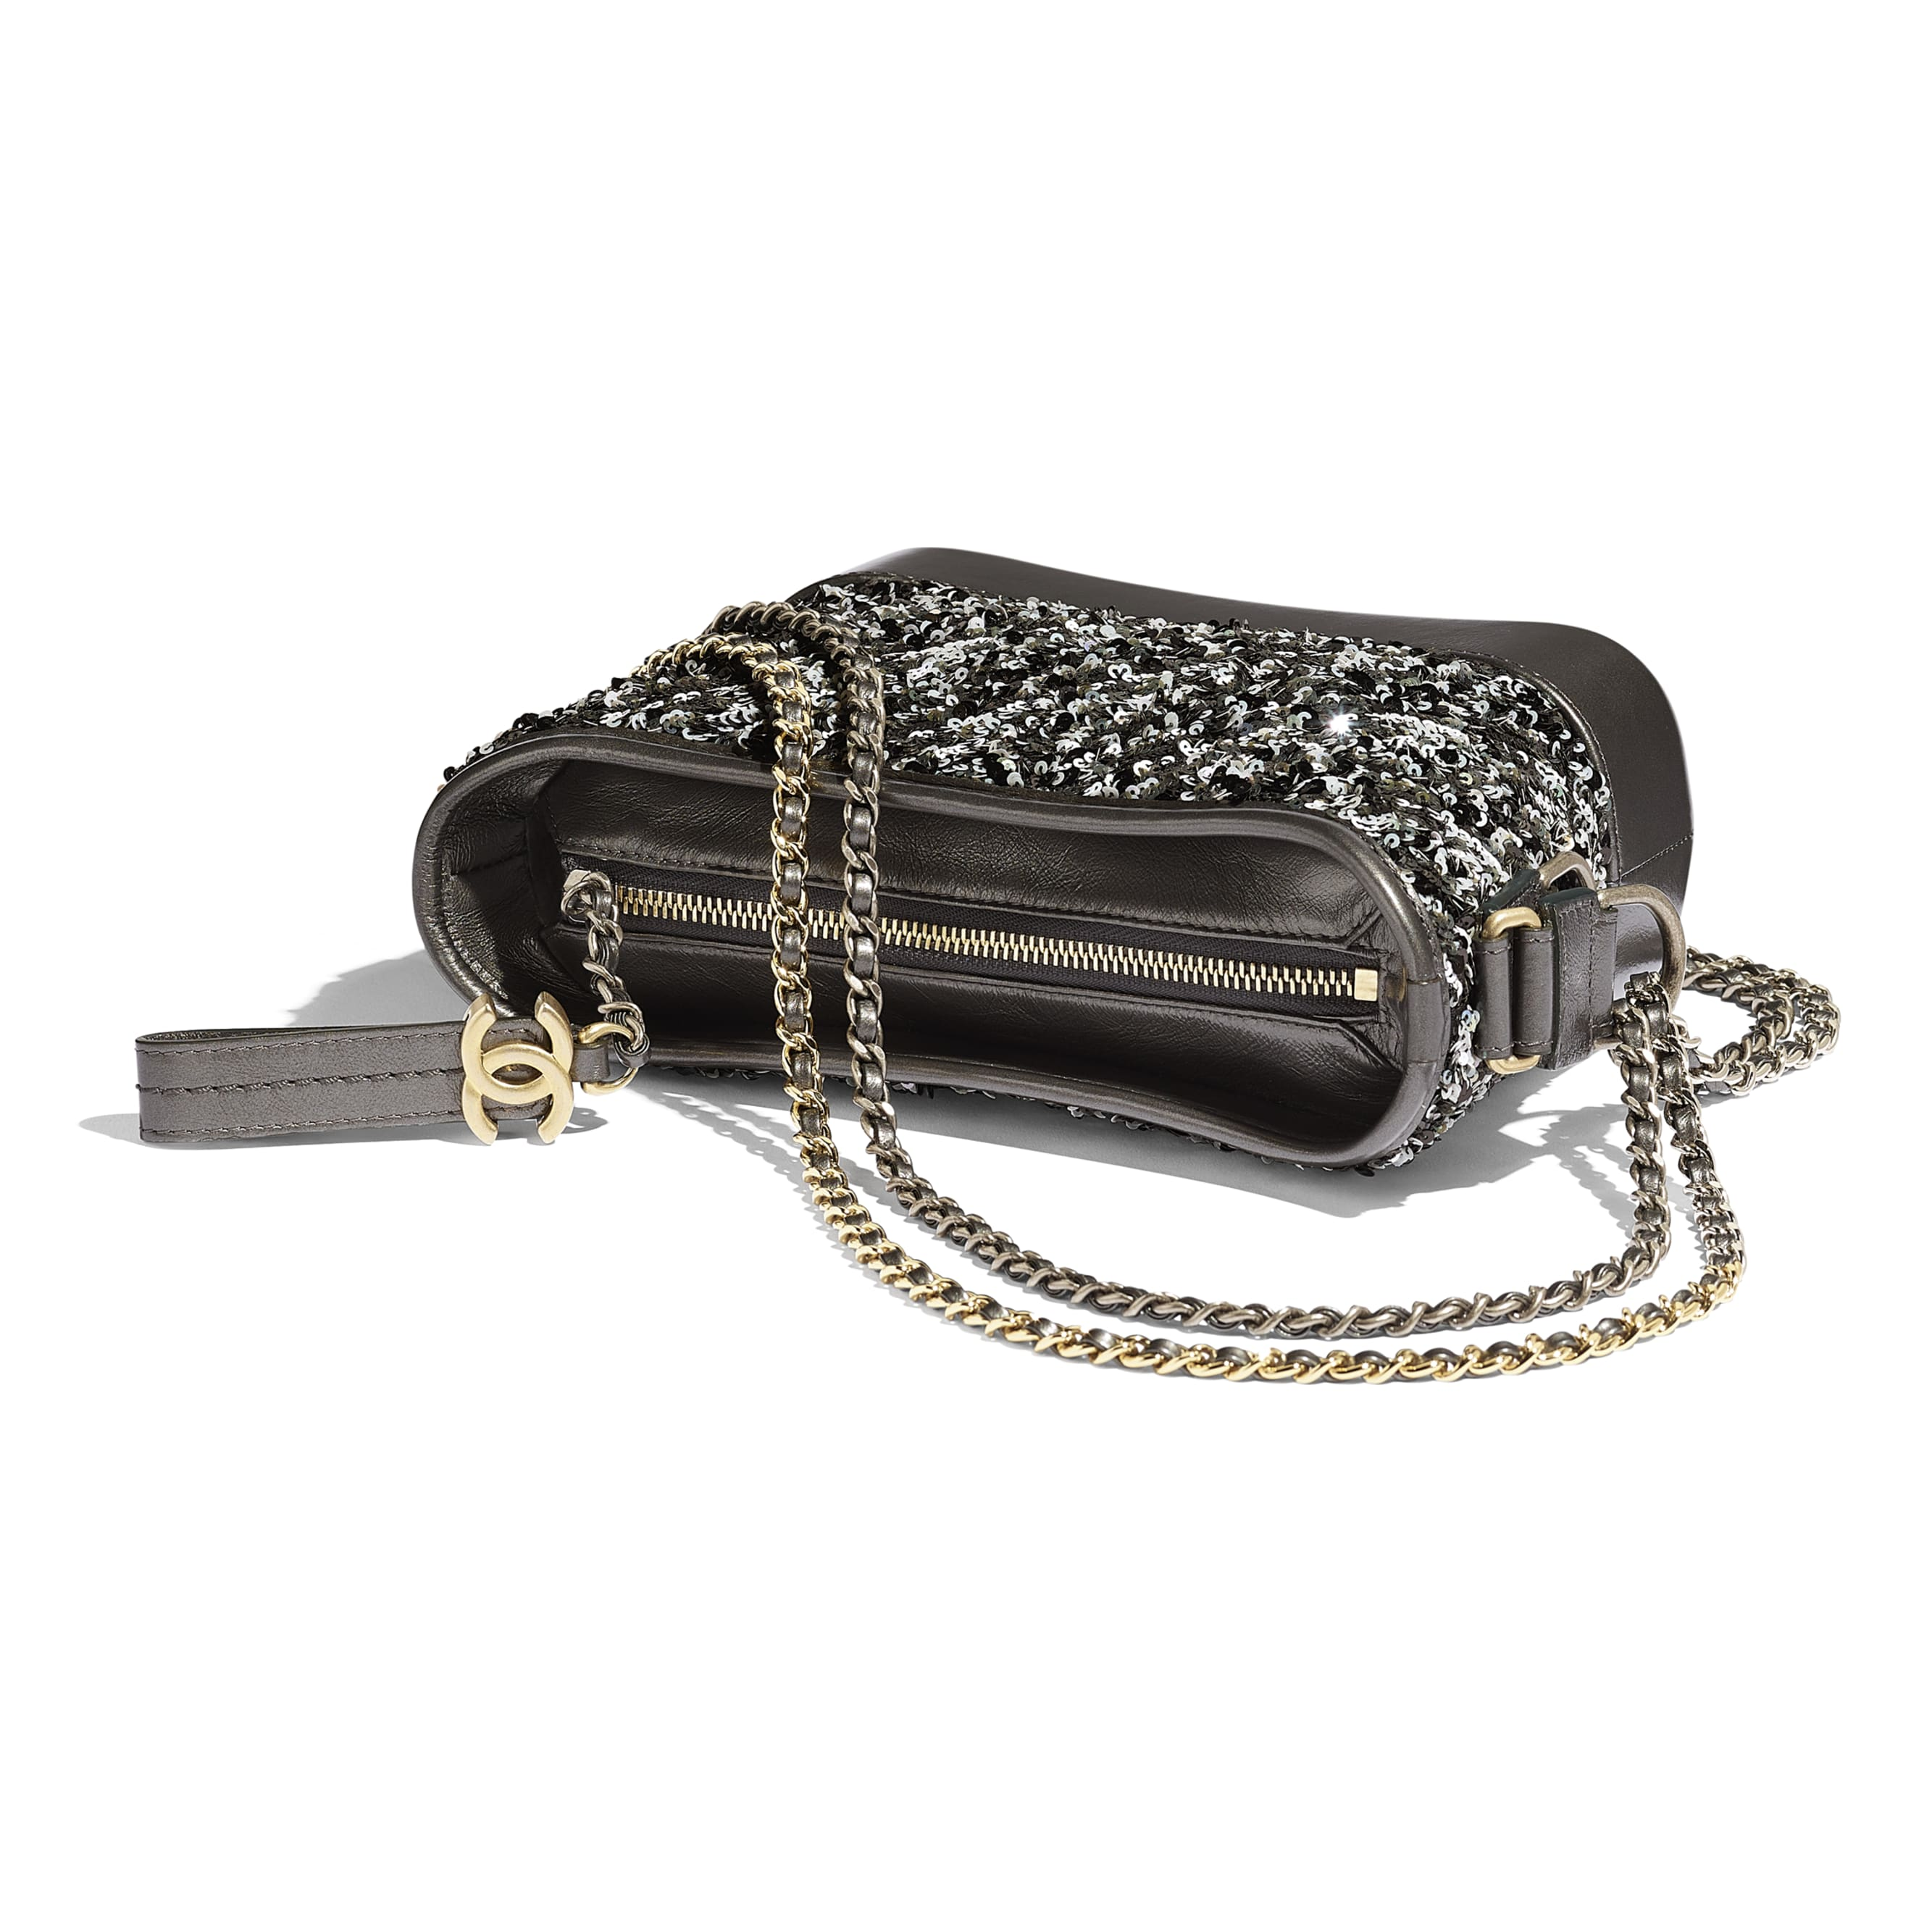 CHANEL'S GABRIELLE Small Hobo Bag - Black - Sequins, Calfksin, Silver-Tone & Gold-Tone Metal - Other view - see standard sized version